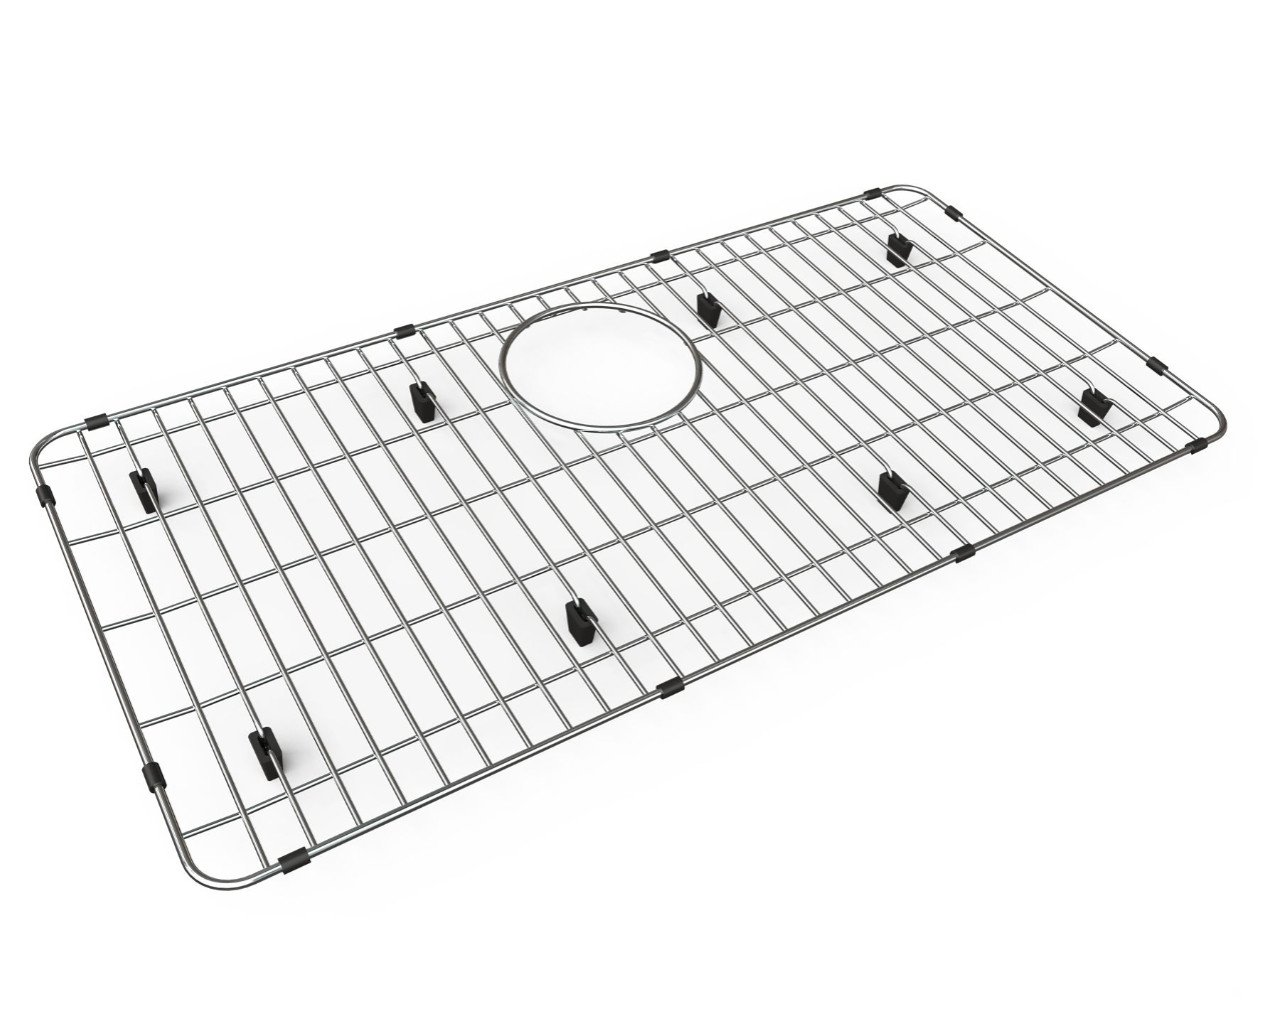 Elkay LKOBG2915SS Gourmet Bottom Grid for ELGR(U)13322, Stainless Steel